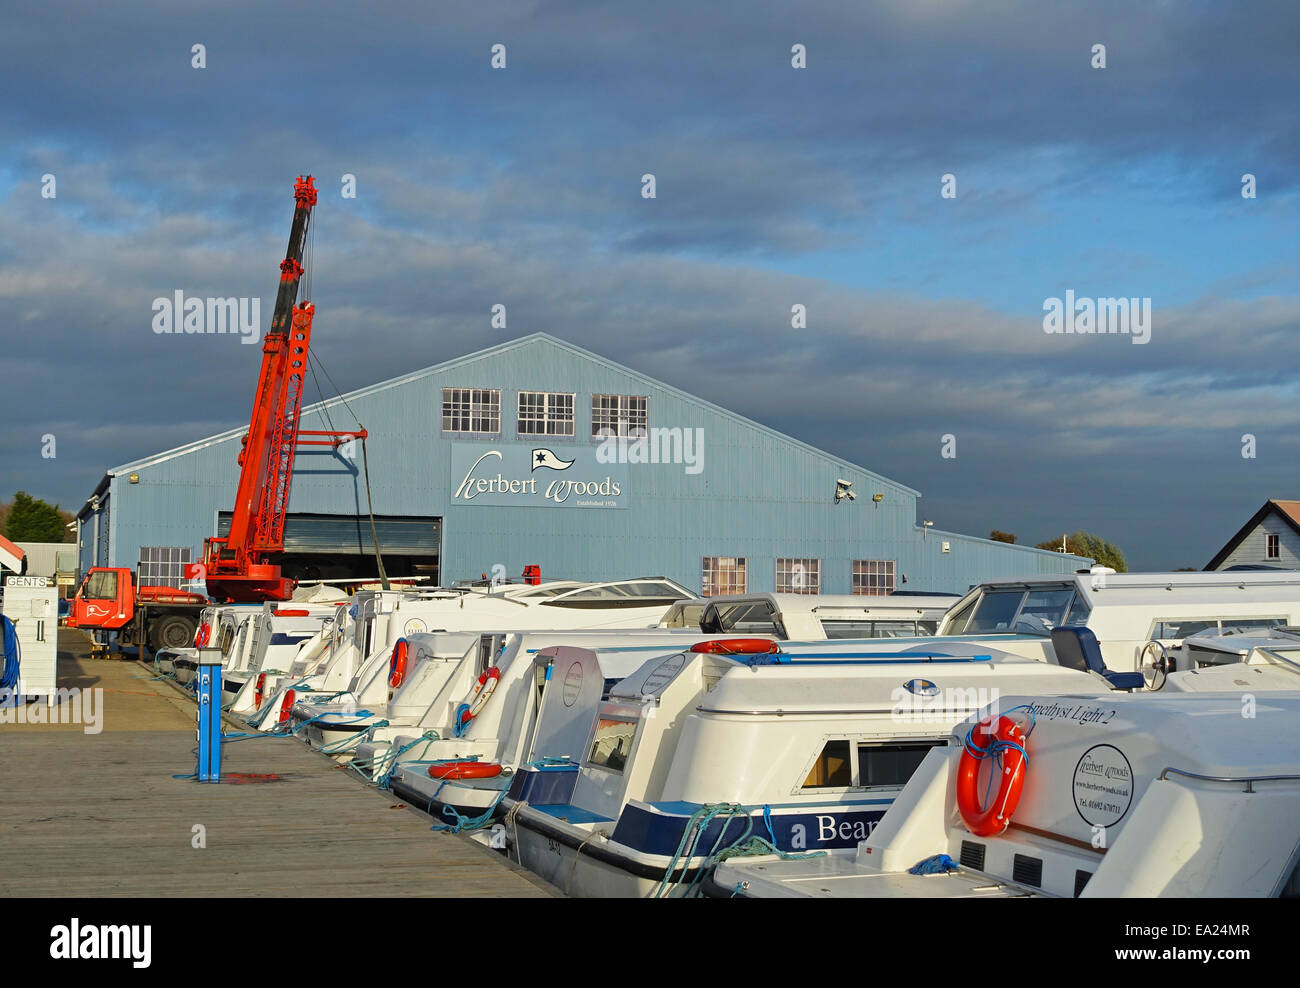 Herbert Woods boating centre and marina, Potter Heigham, Norfolk, England UK - Stock Image